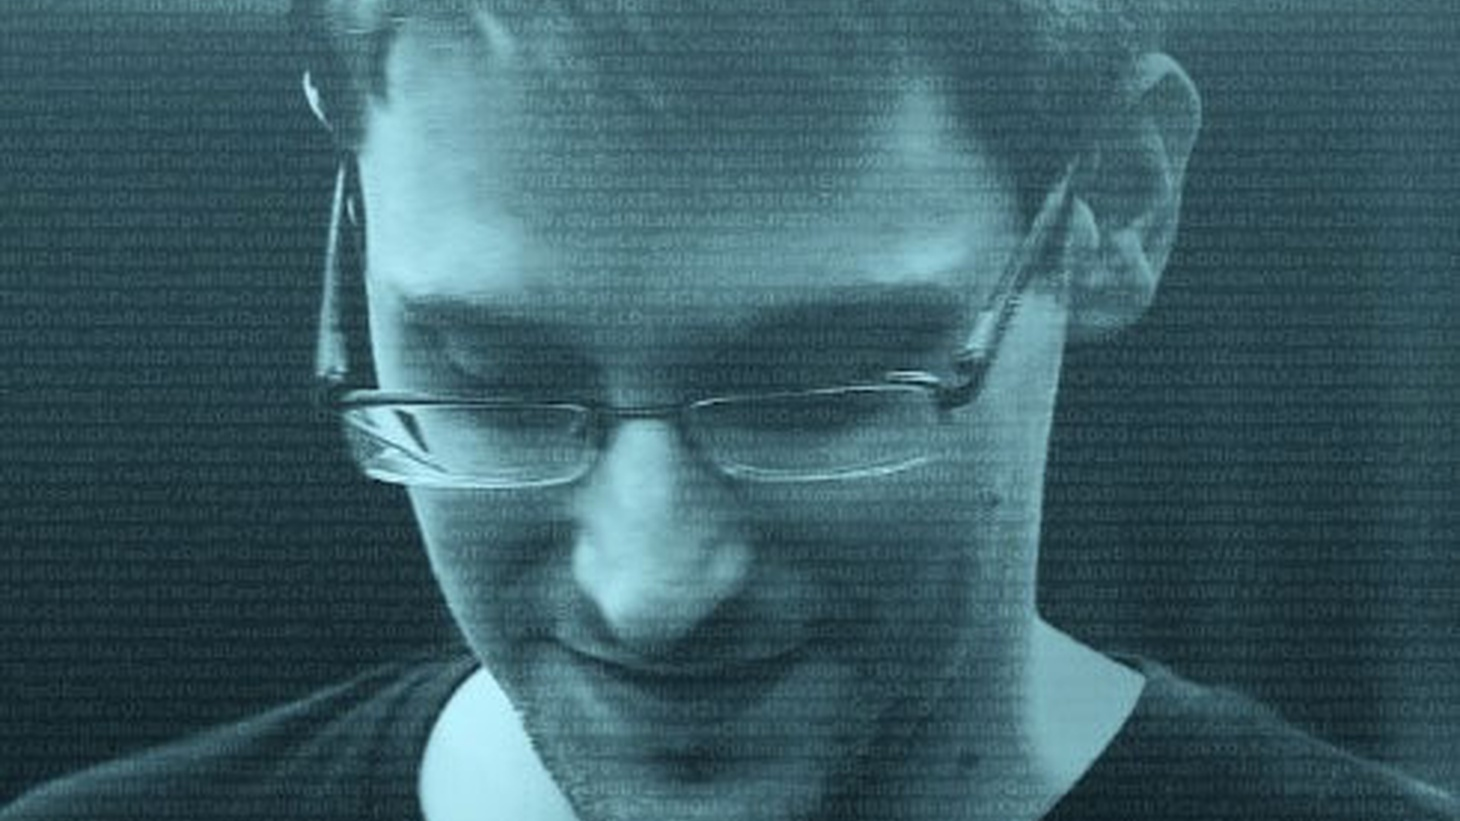 In May of 2013, Edward Snowden flew to Hong Kong and quietly ensconced himself in a room in an upscale hotel. He wanted to be outside the reach of American authorities when he released his huge cache of explosive, top secret documents. The documents exposed the U.S. government's domestic spying programs. Eight days later, Snowden fled to Russia.